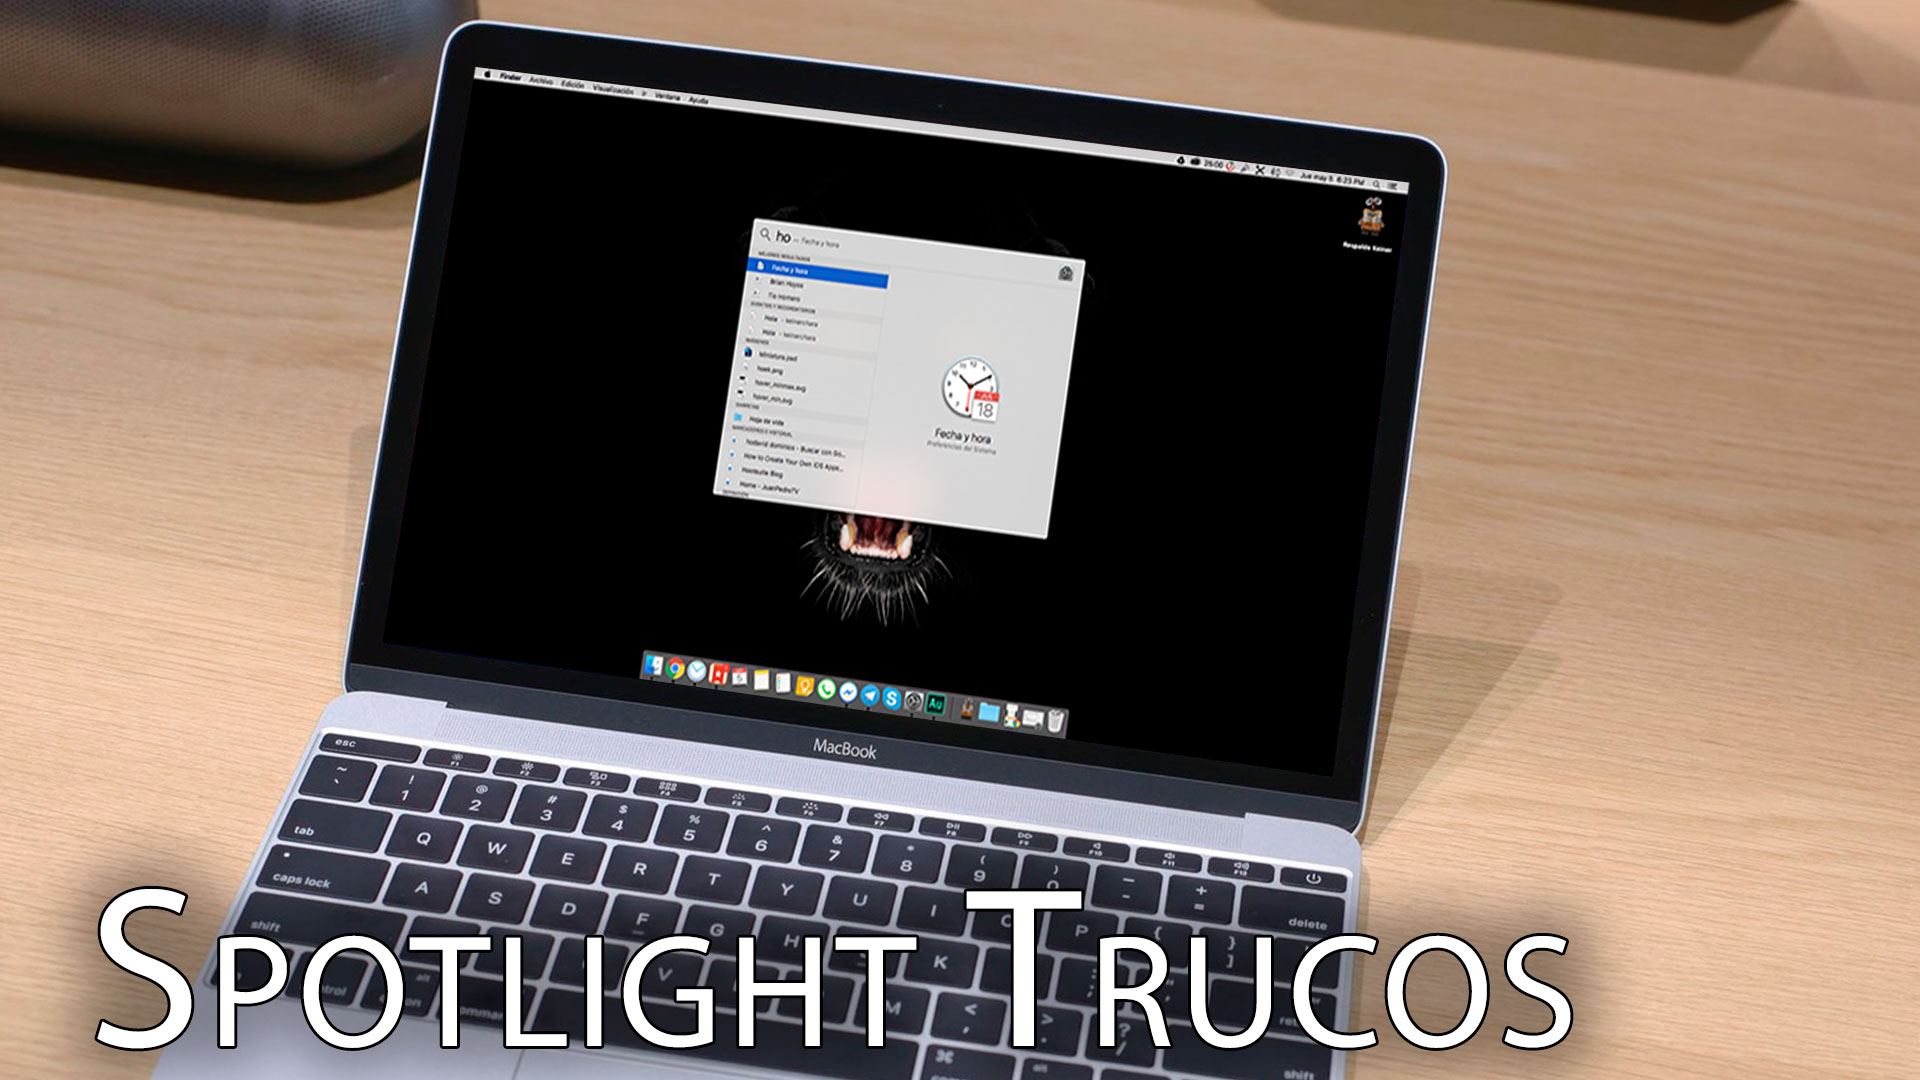 Spotlight-trucos-ESCAPE-DIGITAL